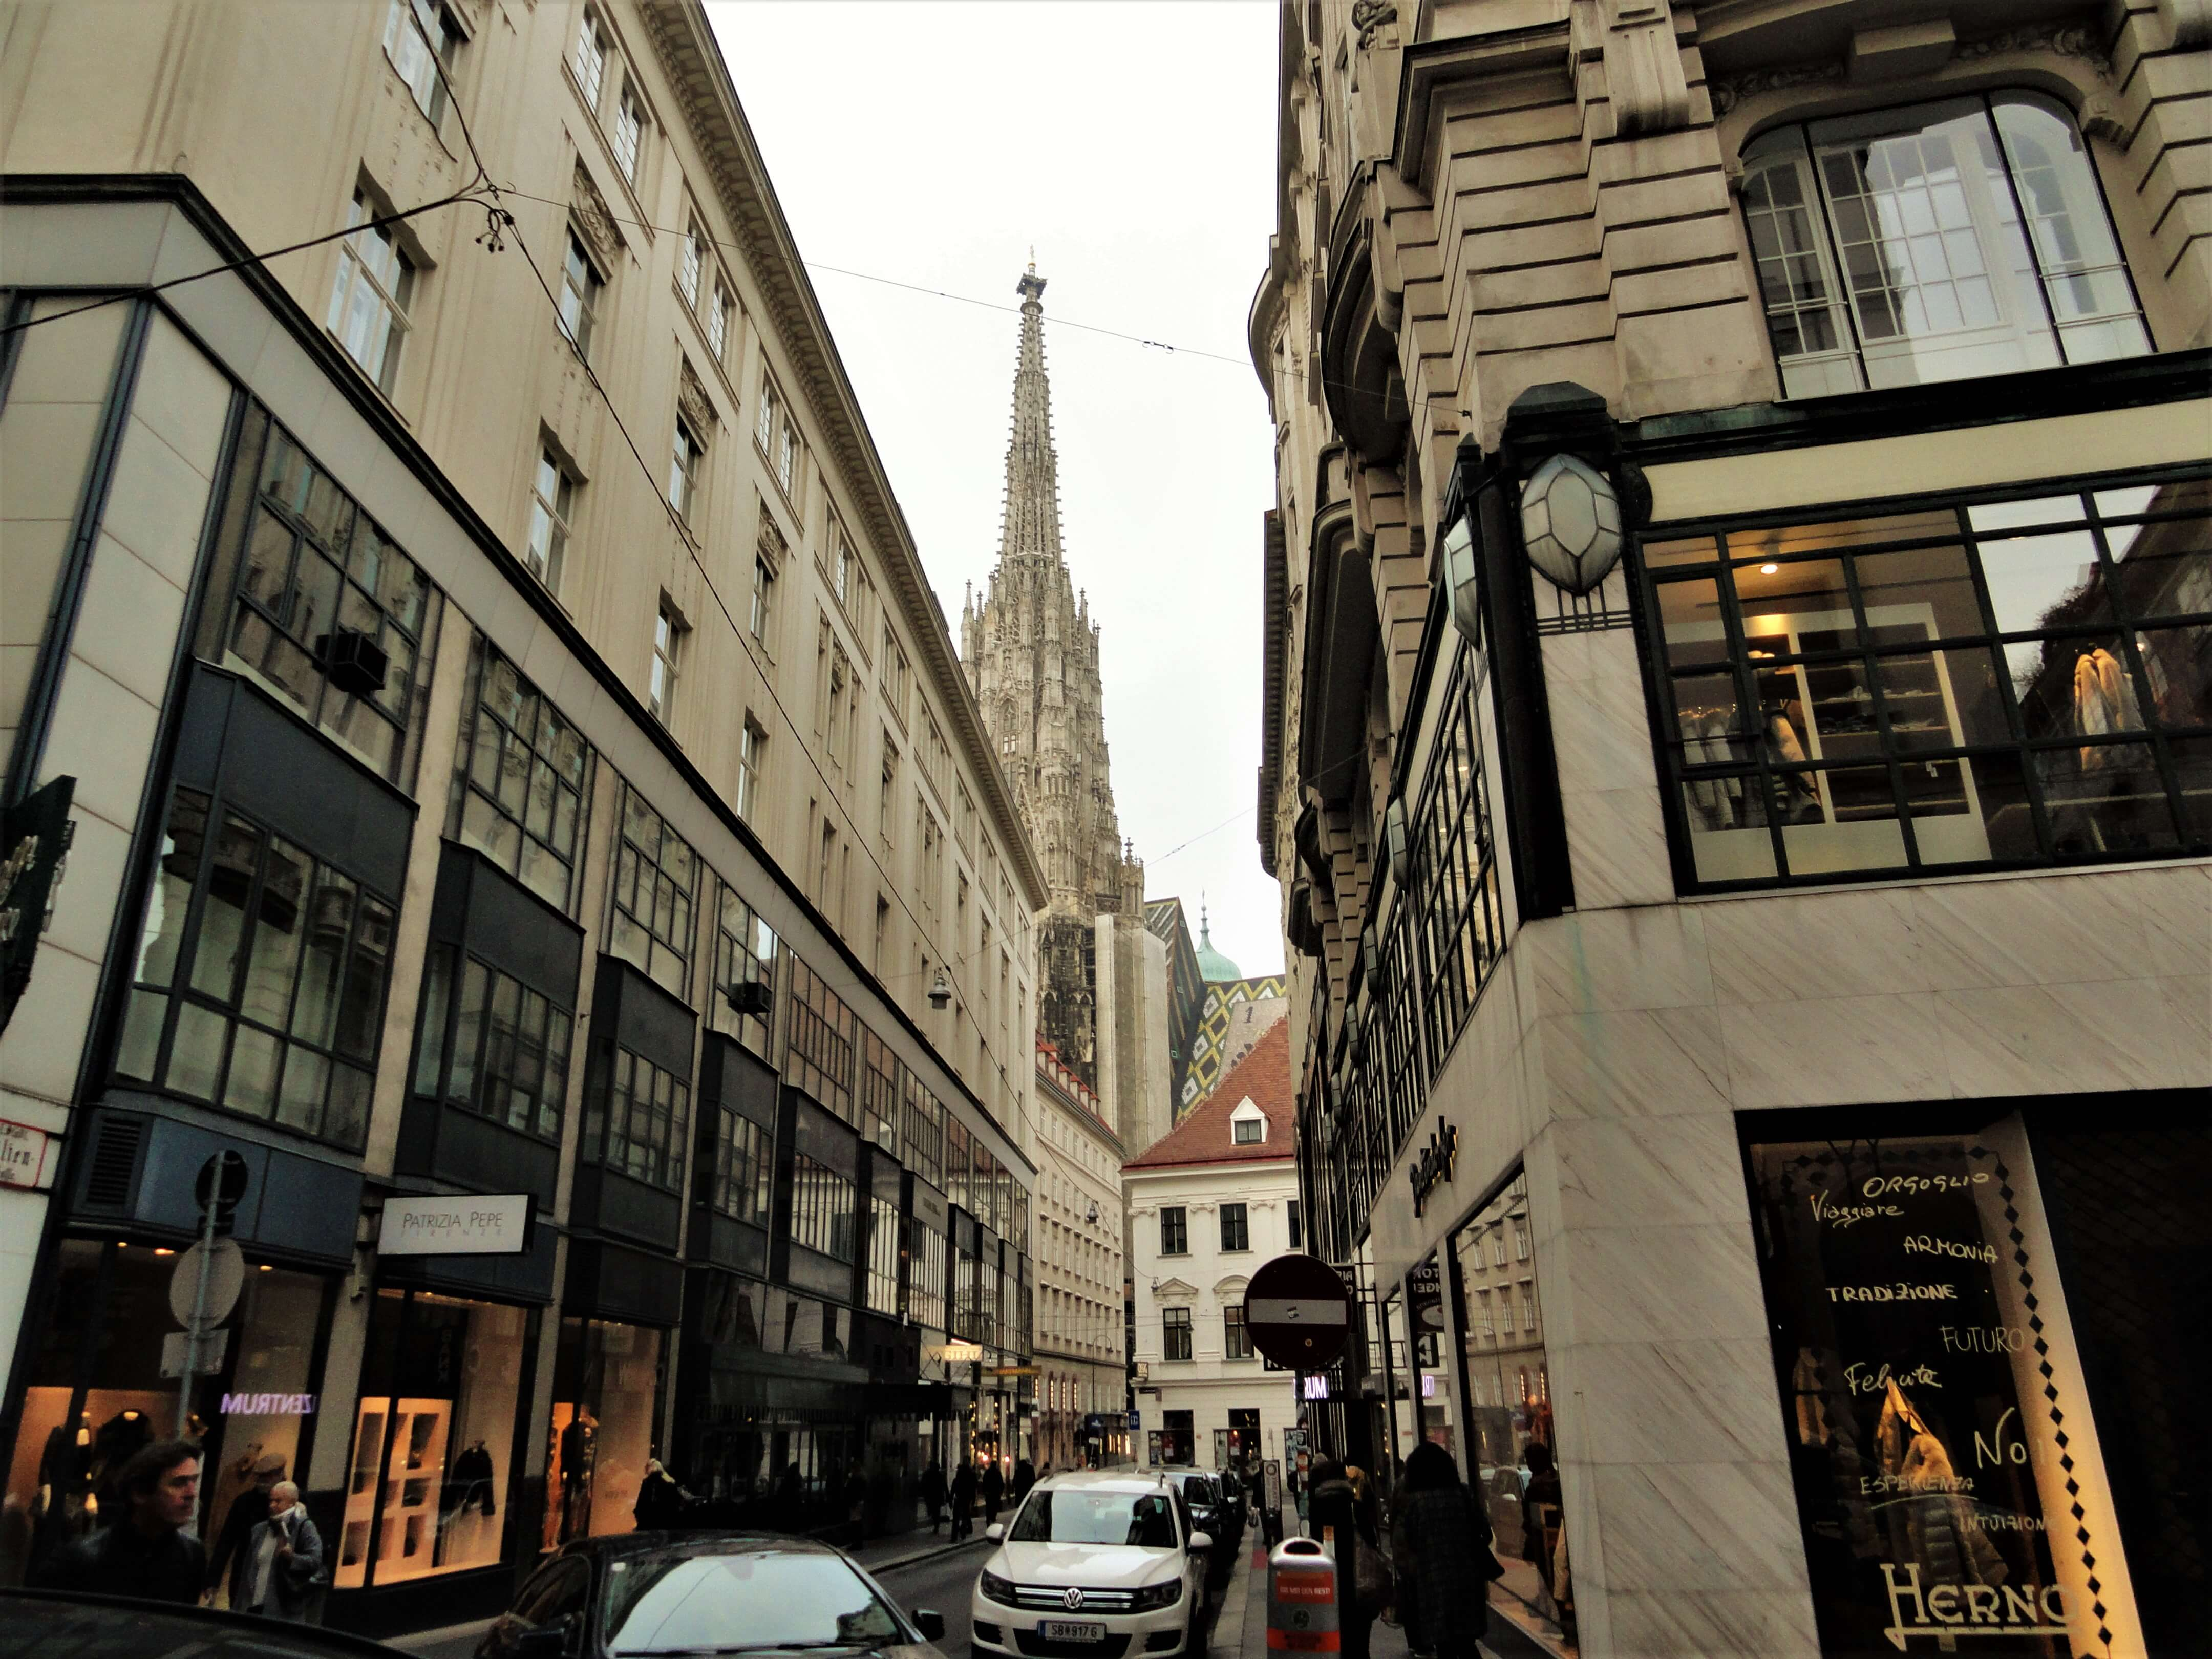 Vienna street with a view of St. Stephens cathedral, places to stay in Vienna